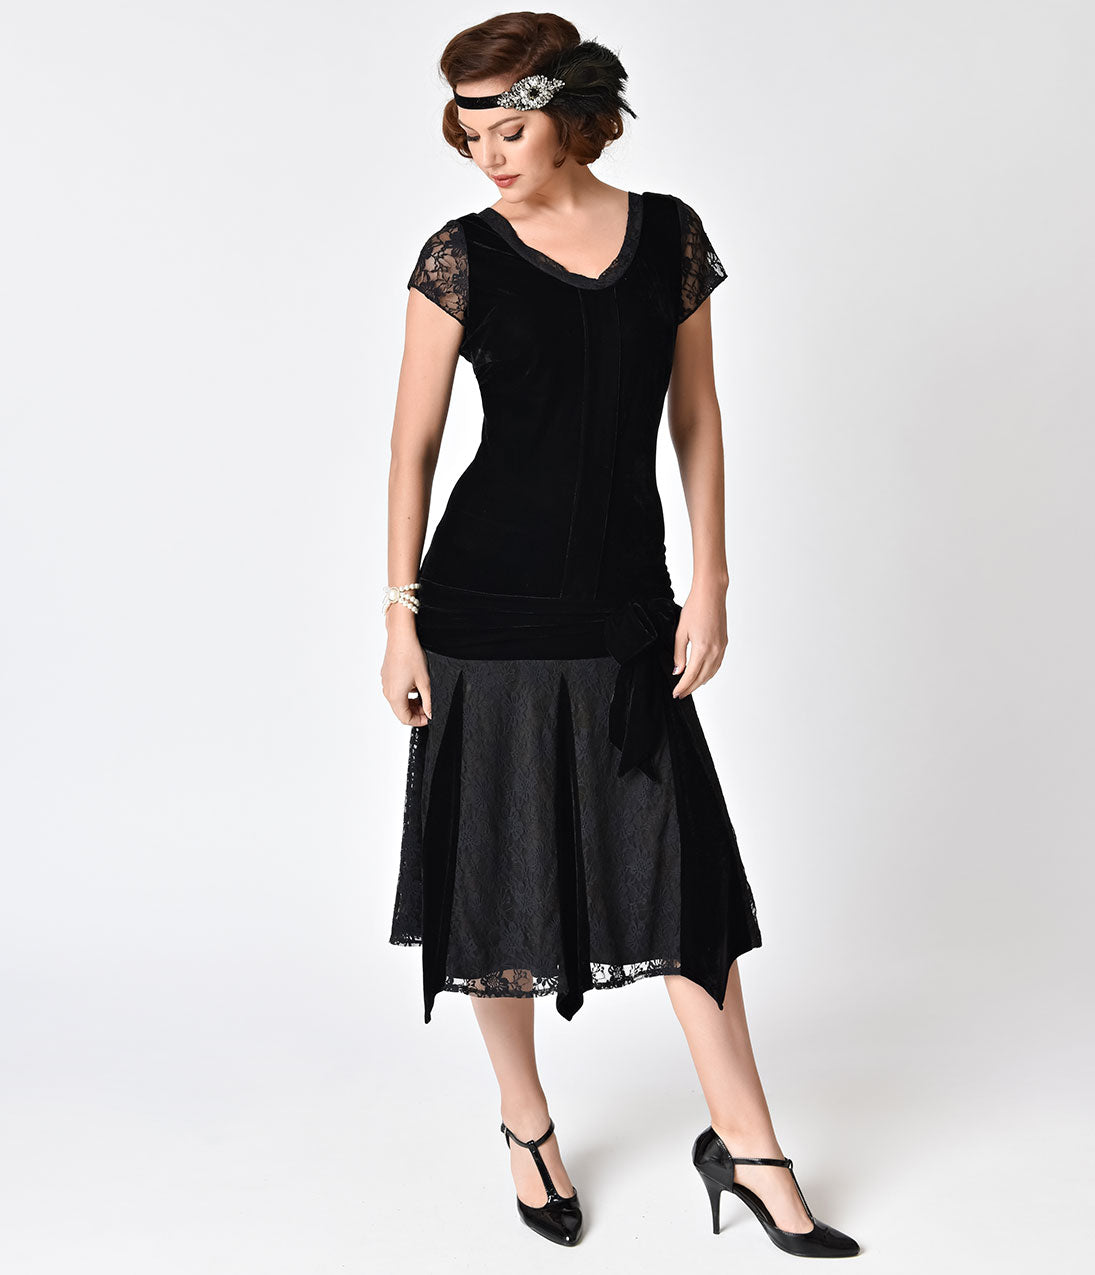 1920s Style Dresses, Flapper Dresses Millie Flapper Dress $71.00 AT vintagedancer.com